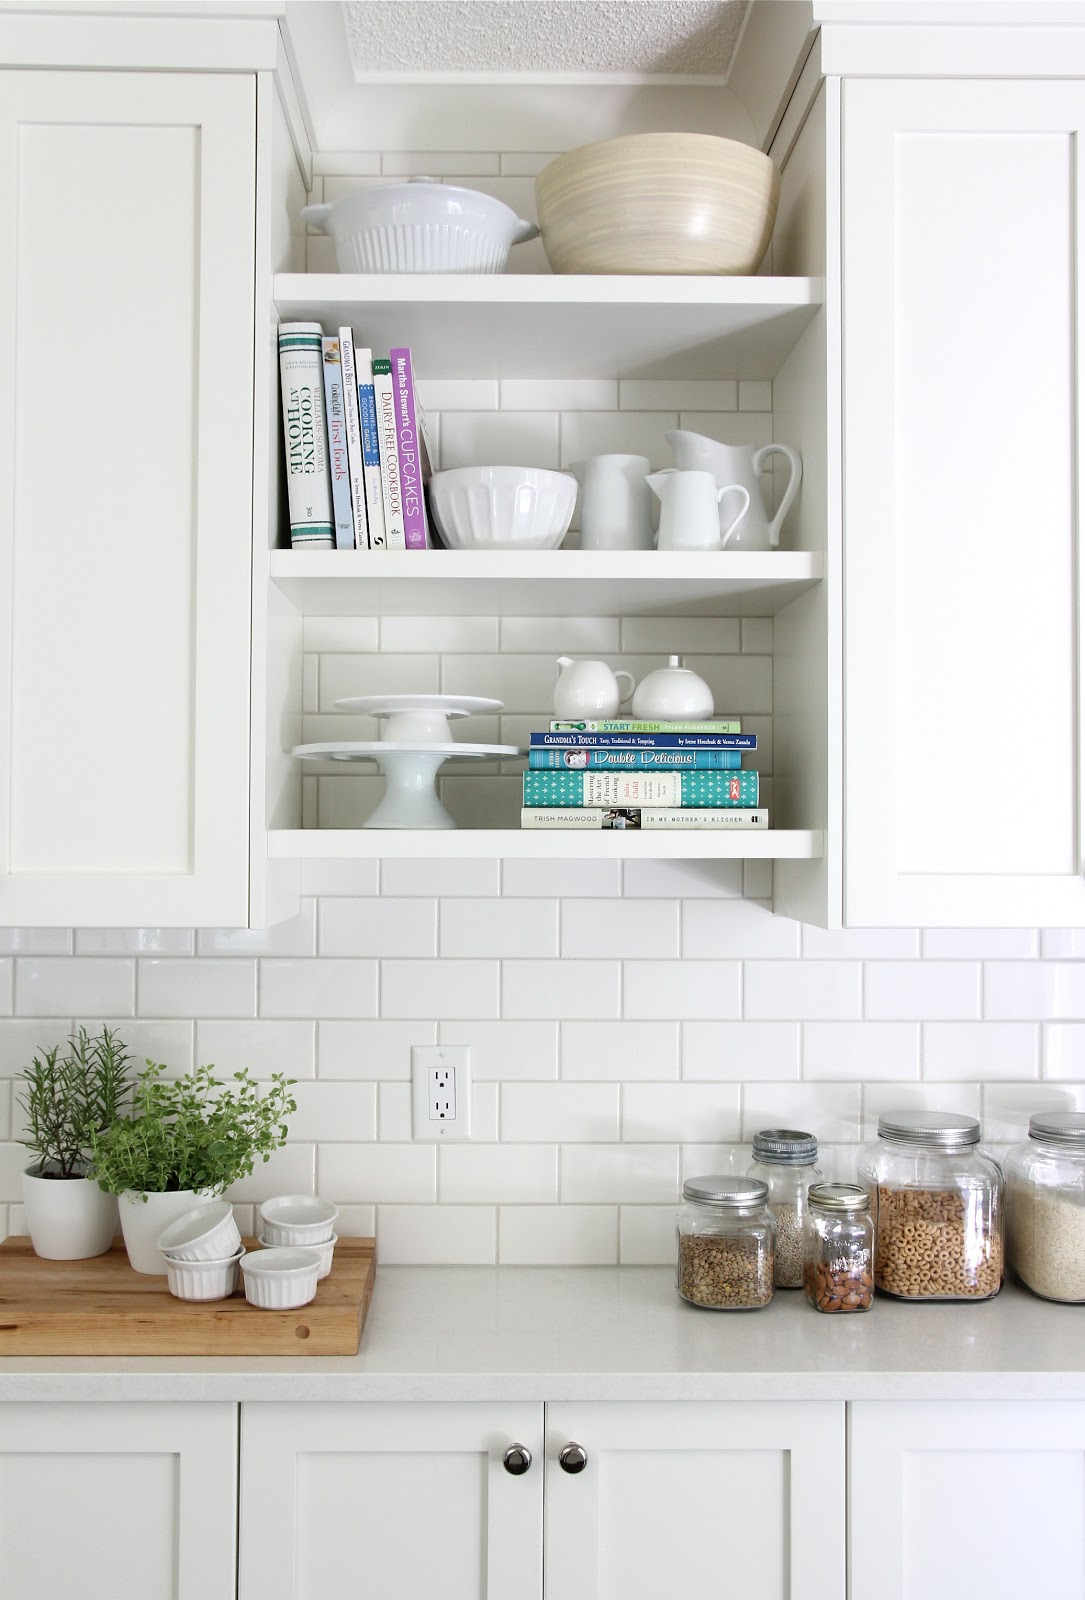 Our house kitchen reveal Open shelving